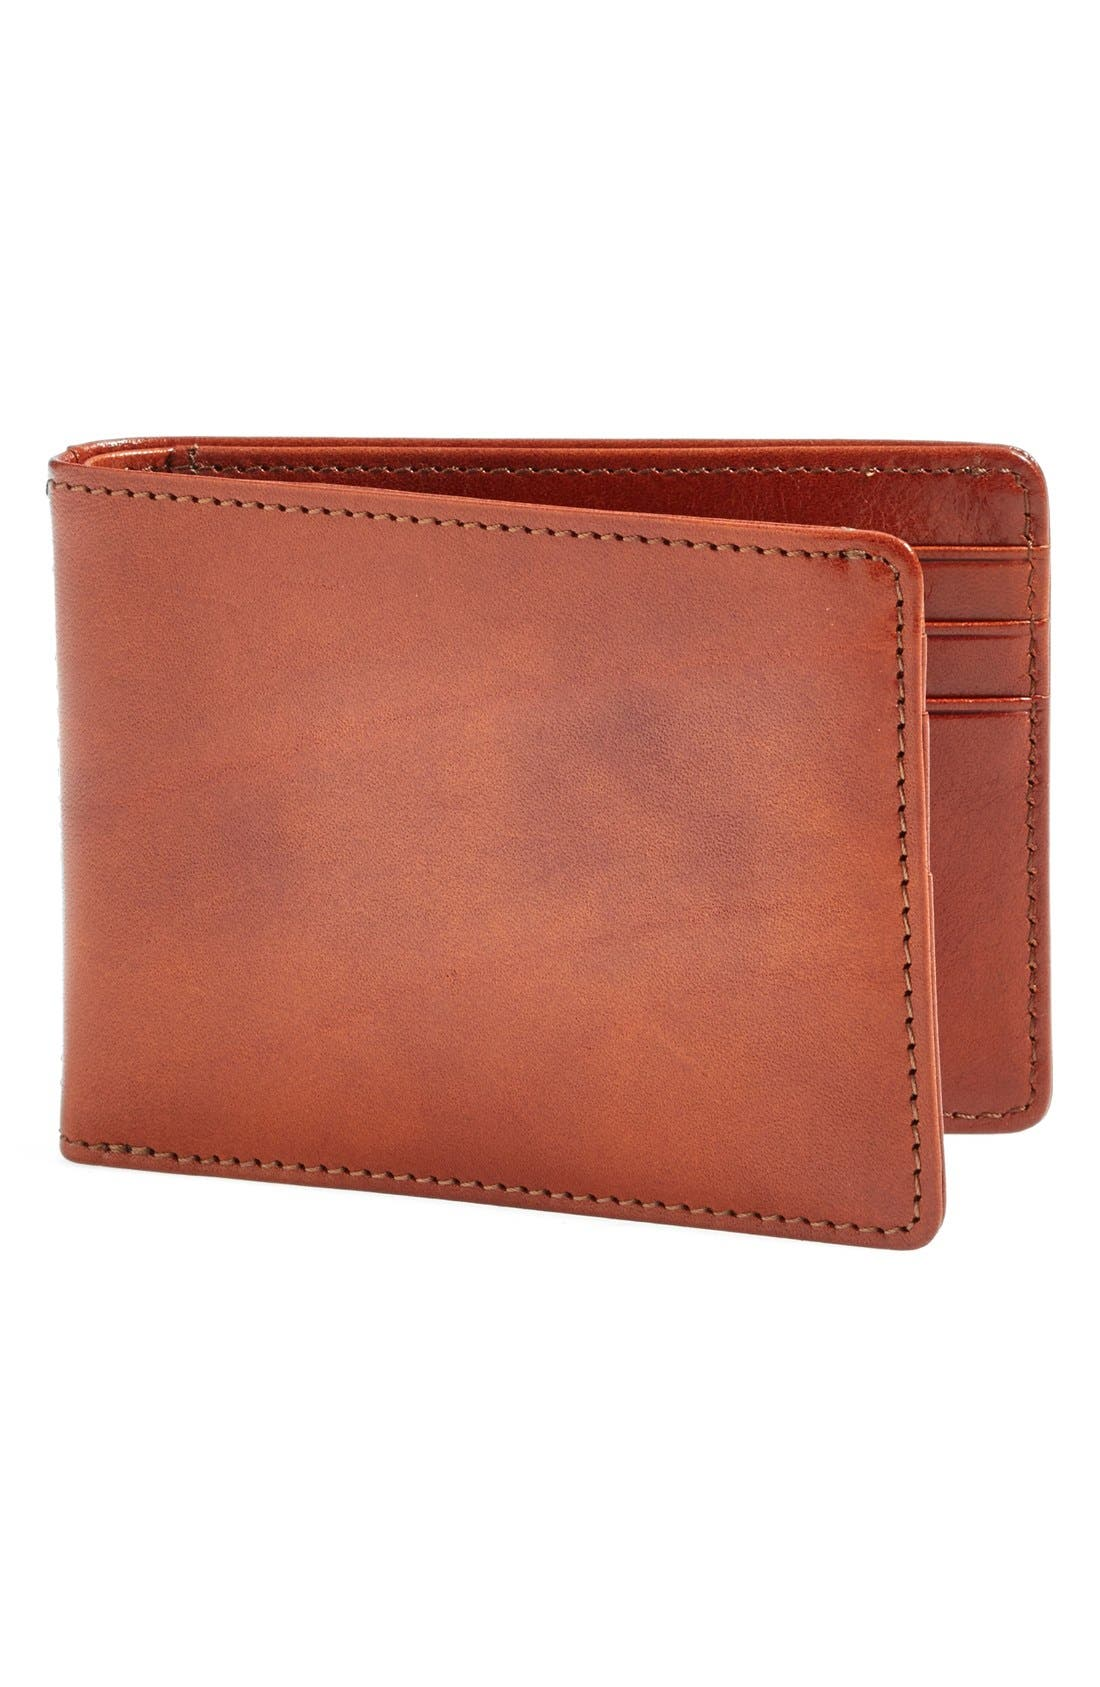 Small Bifold Wallet,                         Main,                         color, AMBER